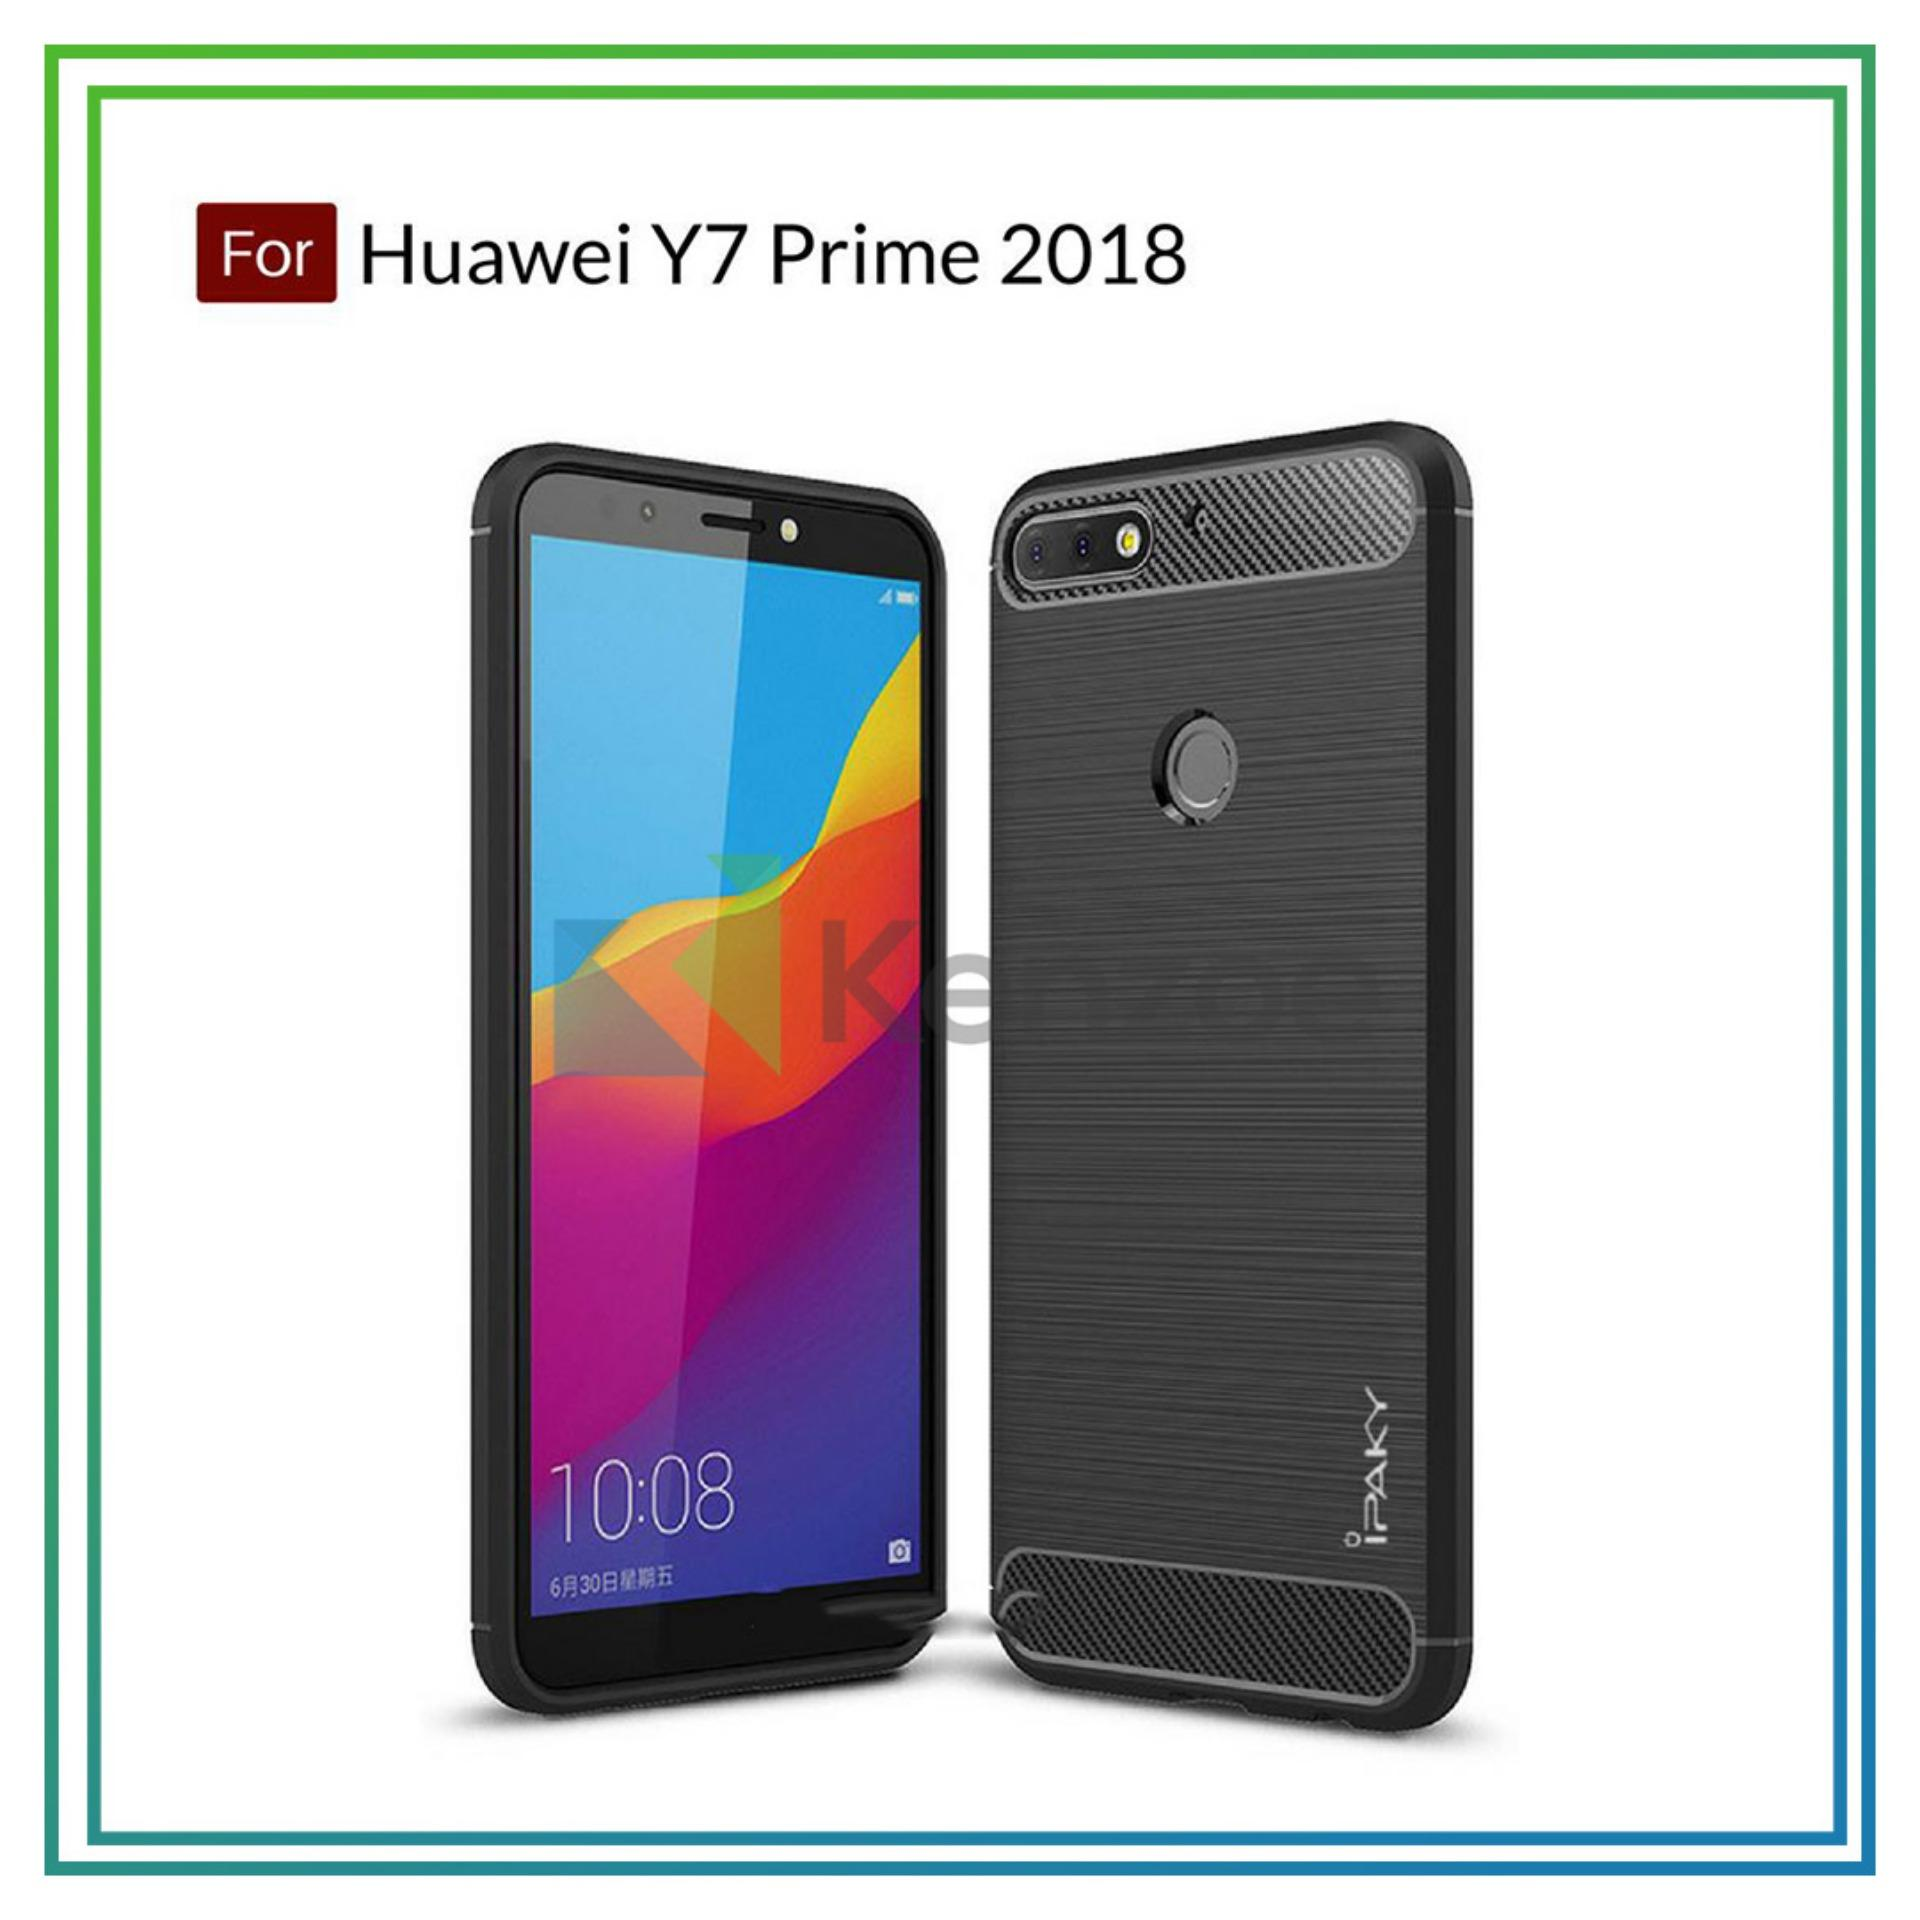 Kenzoe Premium Quality Carbon Shockproof Hybrid Case for Huawei Y7 Prime 2018 - Black